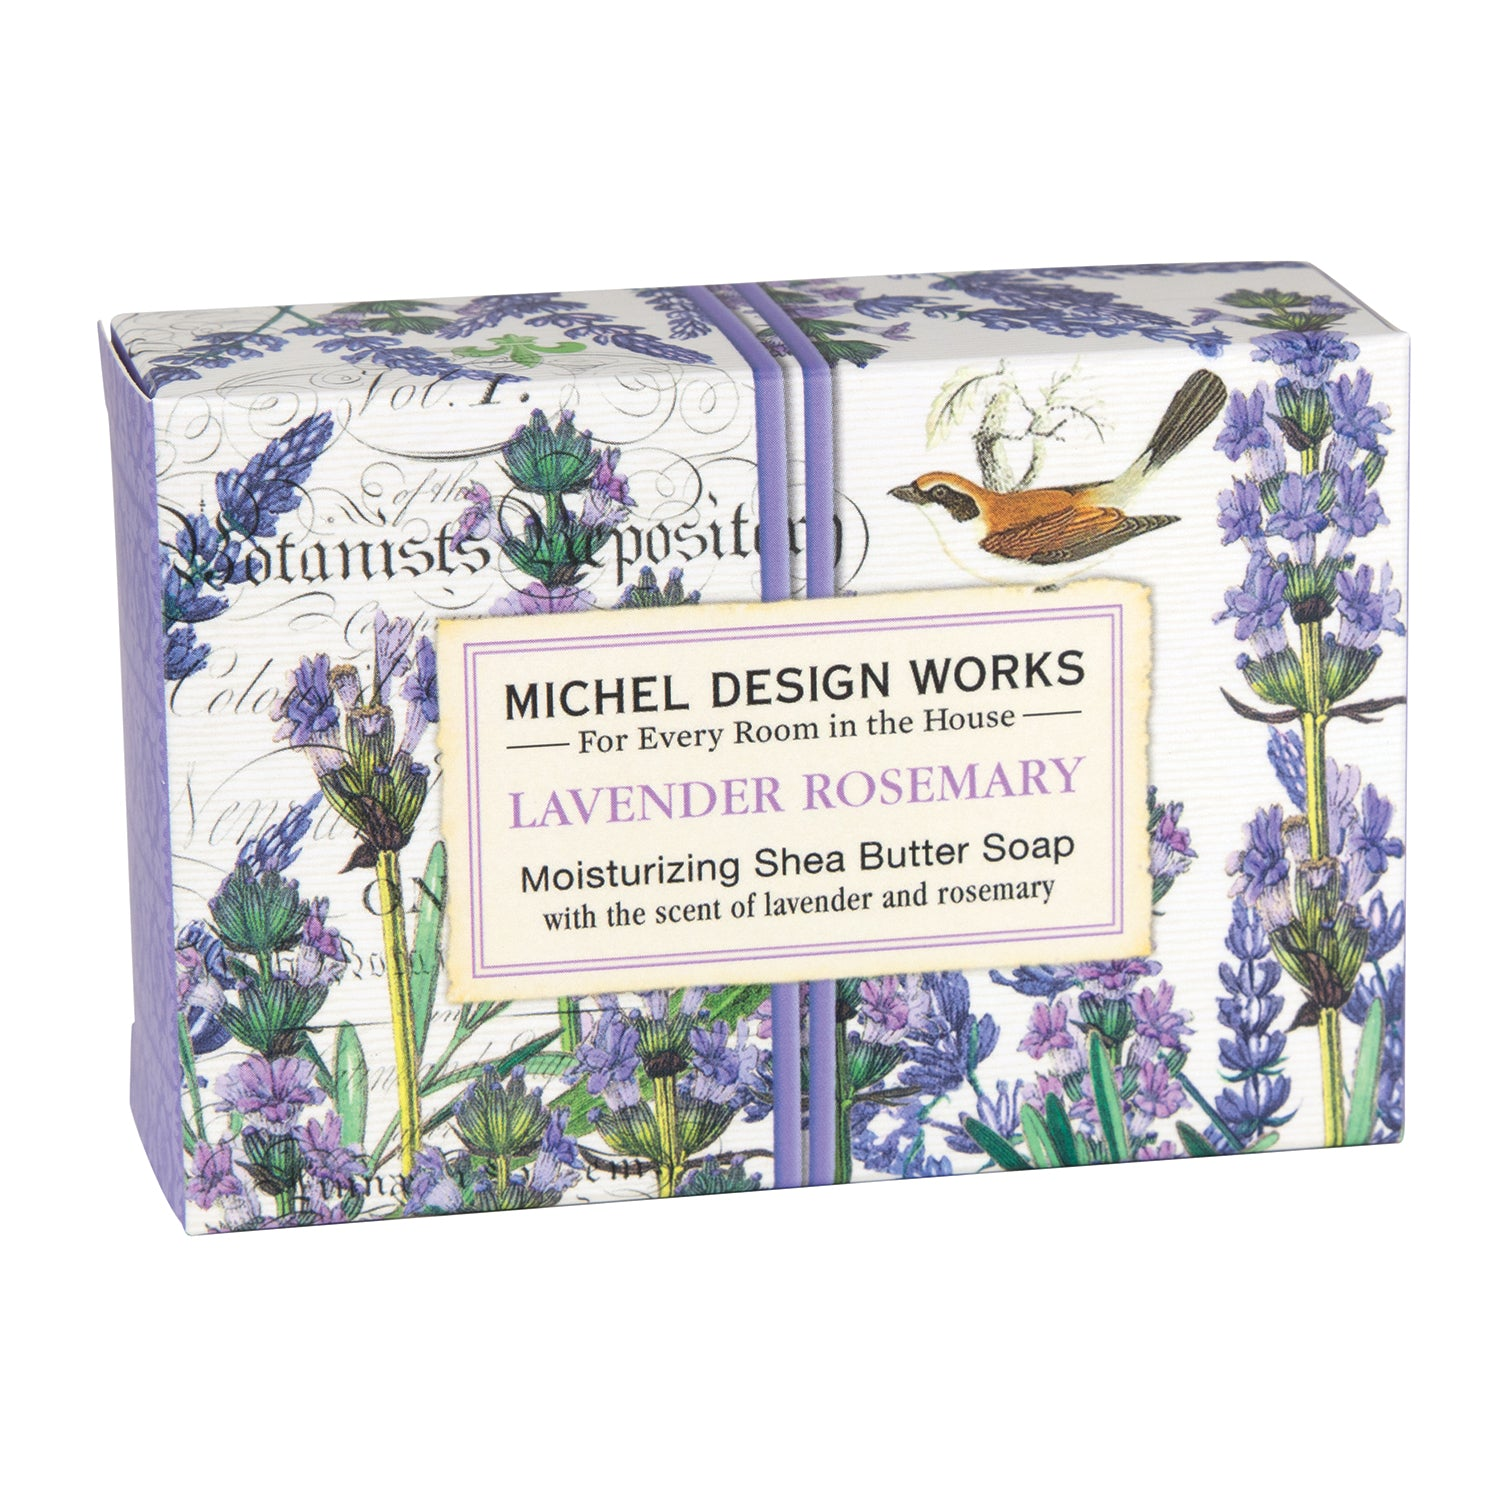 Lavender Rosemary Boxed Single Soap